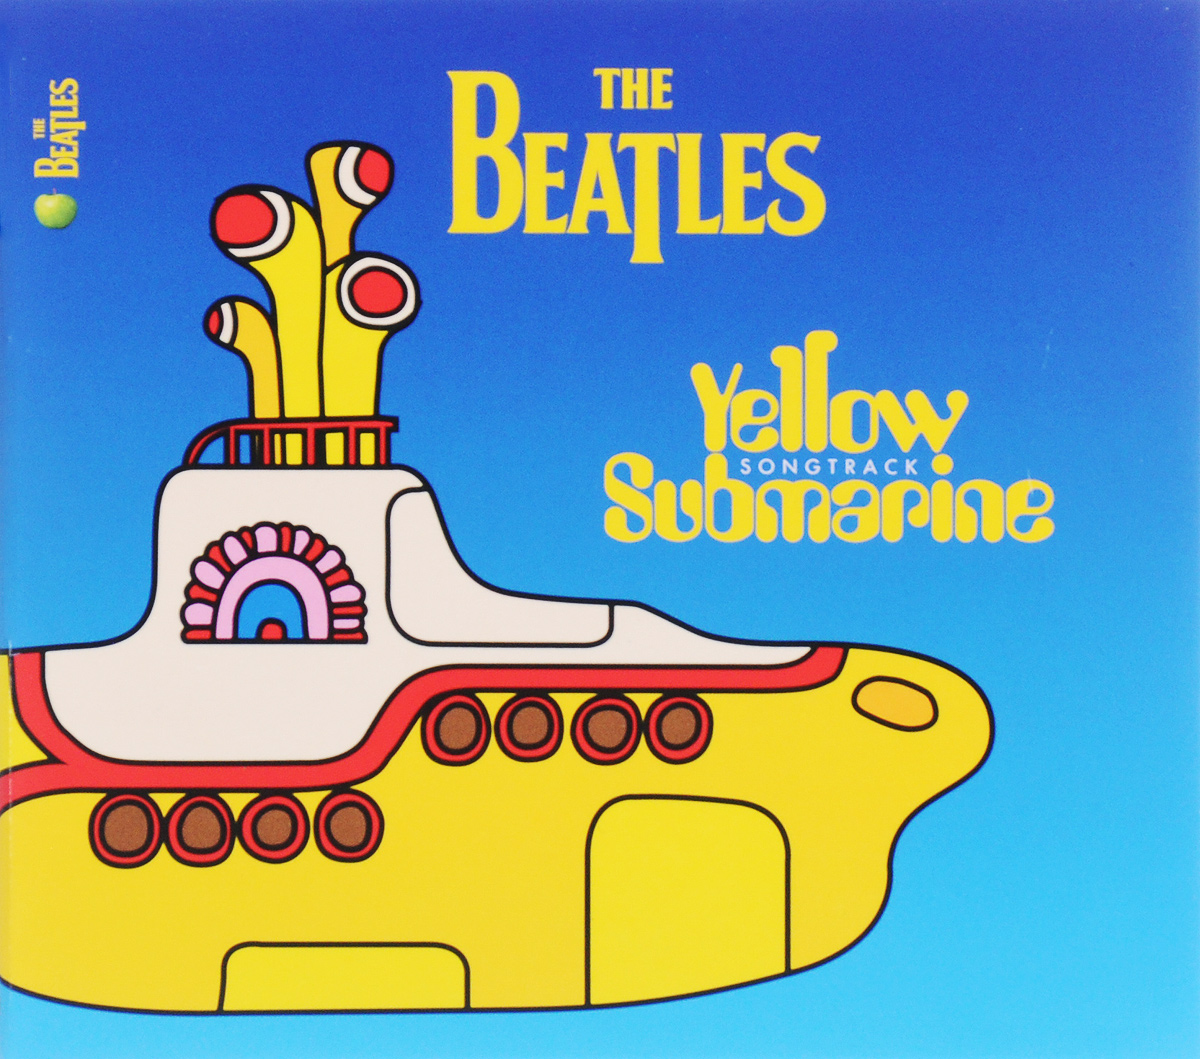 The Beatles Beatles. Yellow Submarine Songtrack